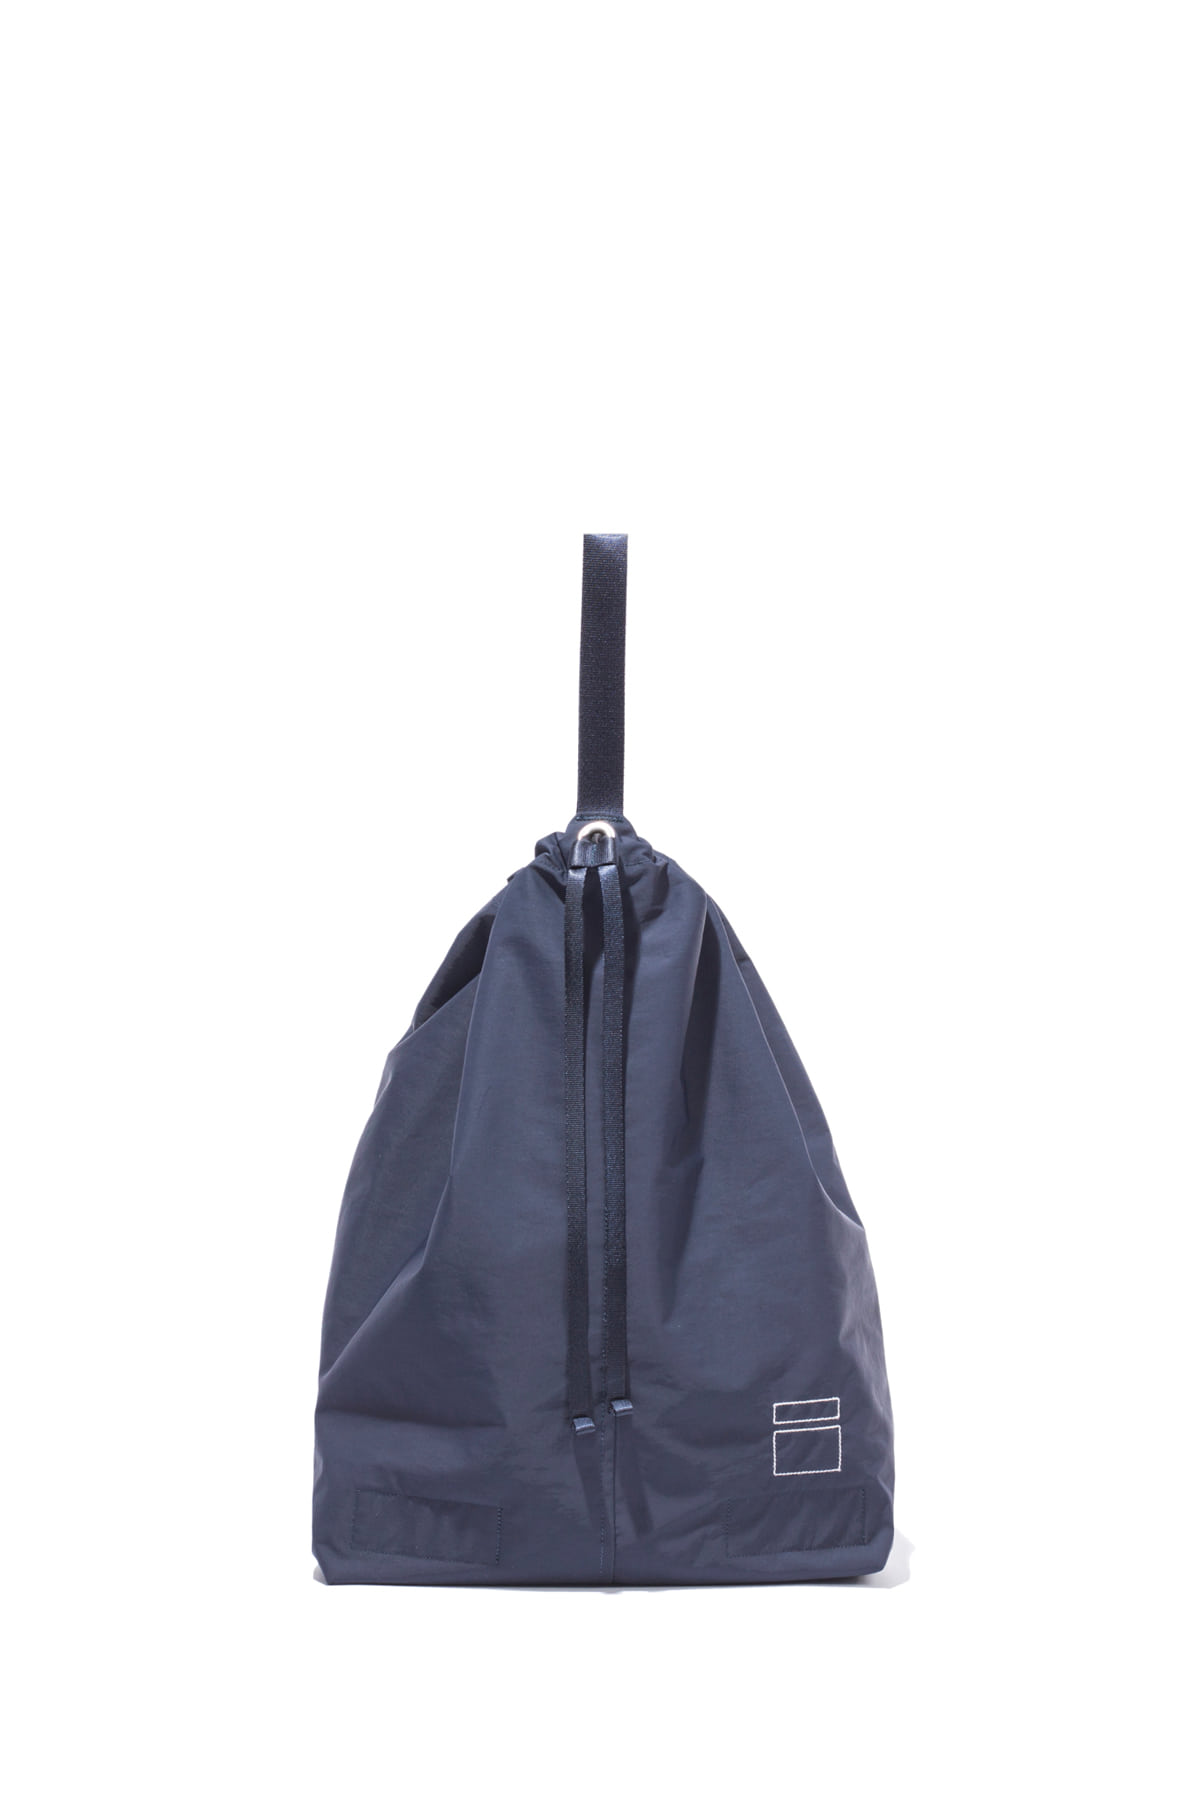 Blankof : BLG 01 6L Fisherman Bag 6 (Navy)